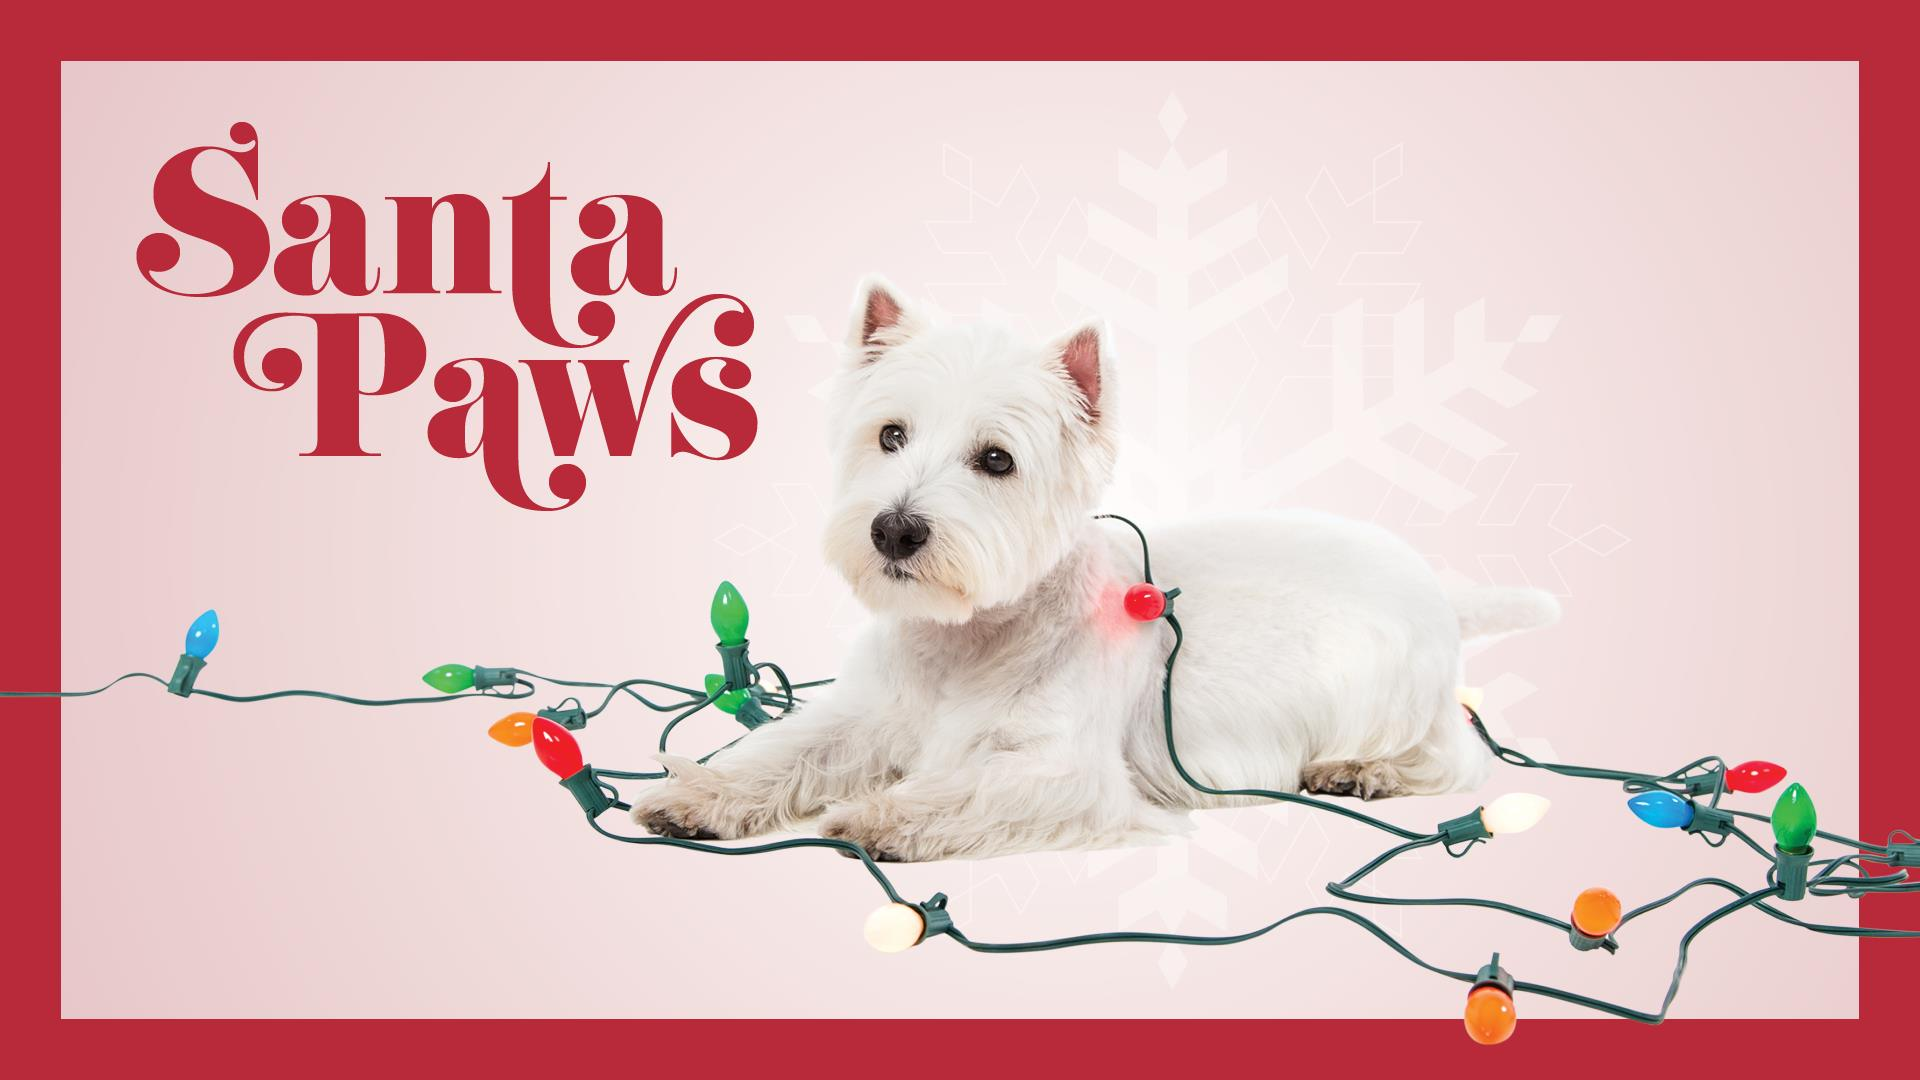 Santa Paws at Hawthorn Mall